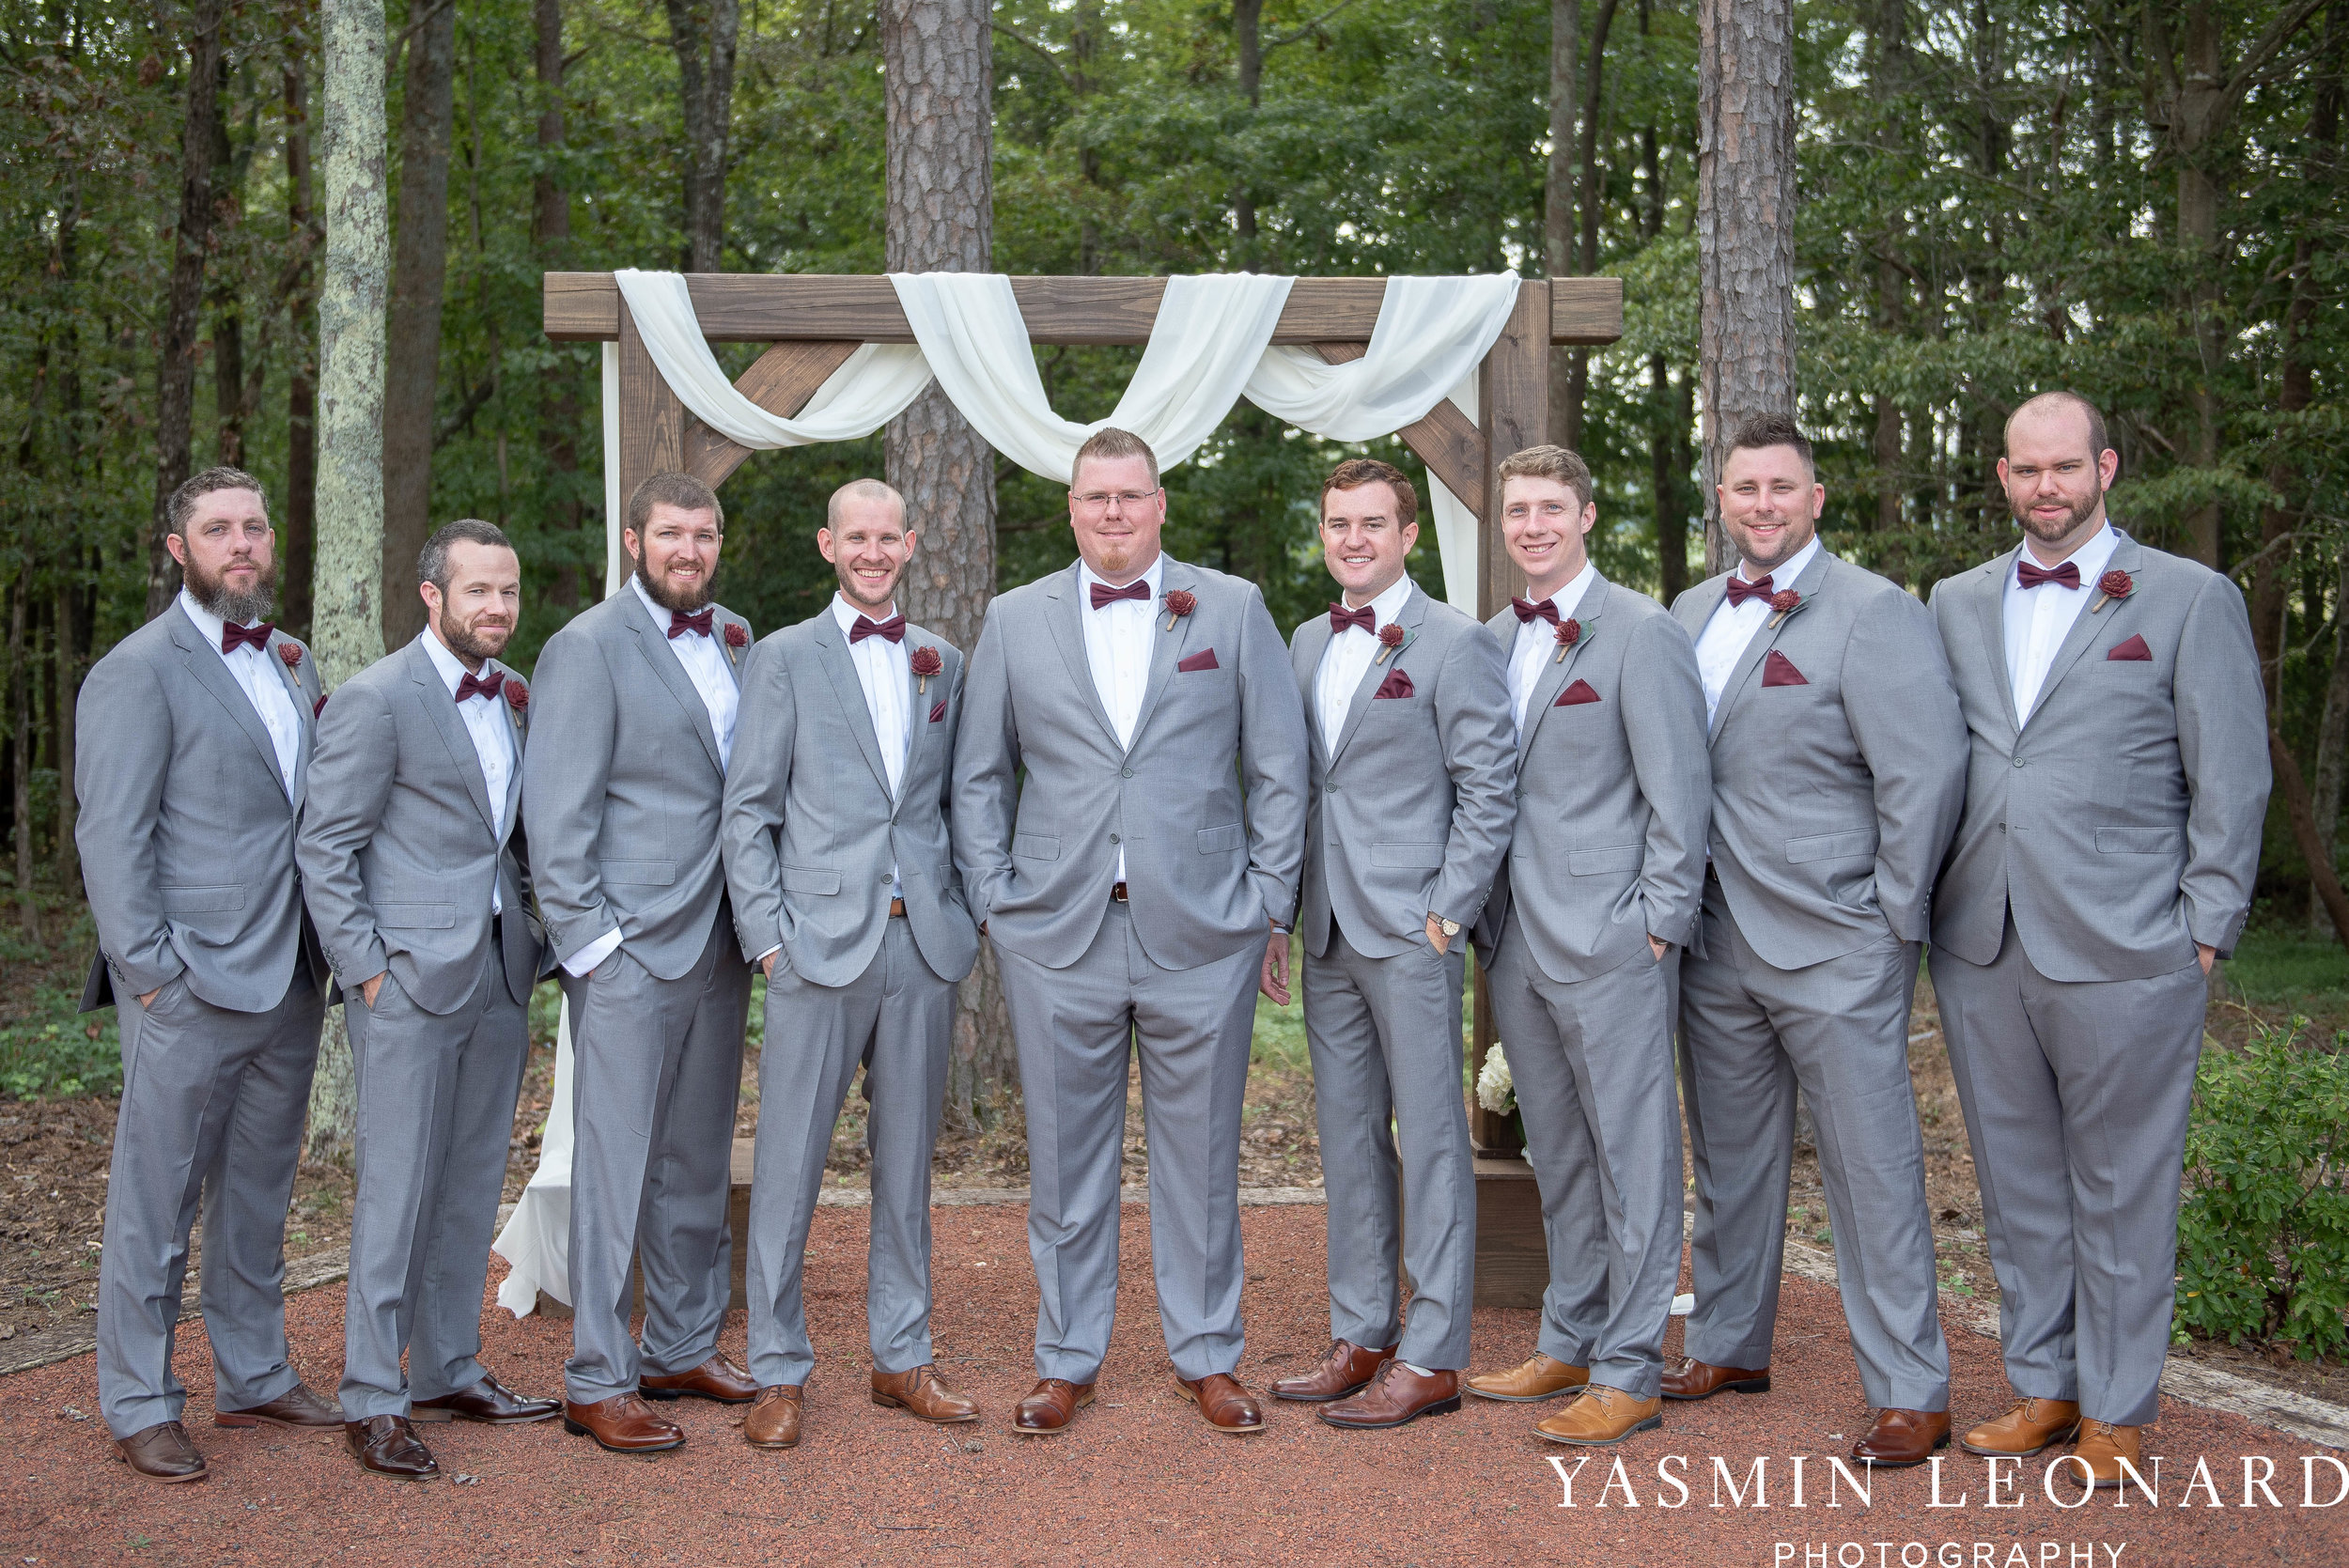 Danner Farms - NC Wedding Venues - NC Barns - Statesville NC - NC Wedding Photographer - High Point Wedding Photographer - Yasmin Leonard Photography-13.jpg